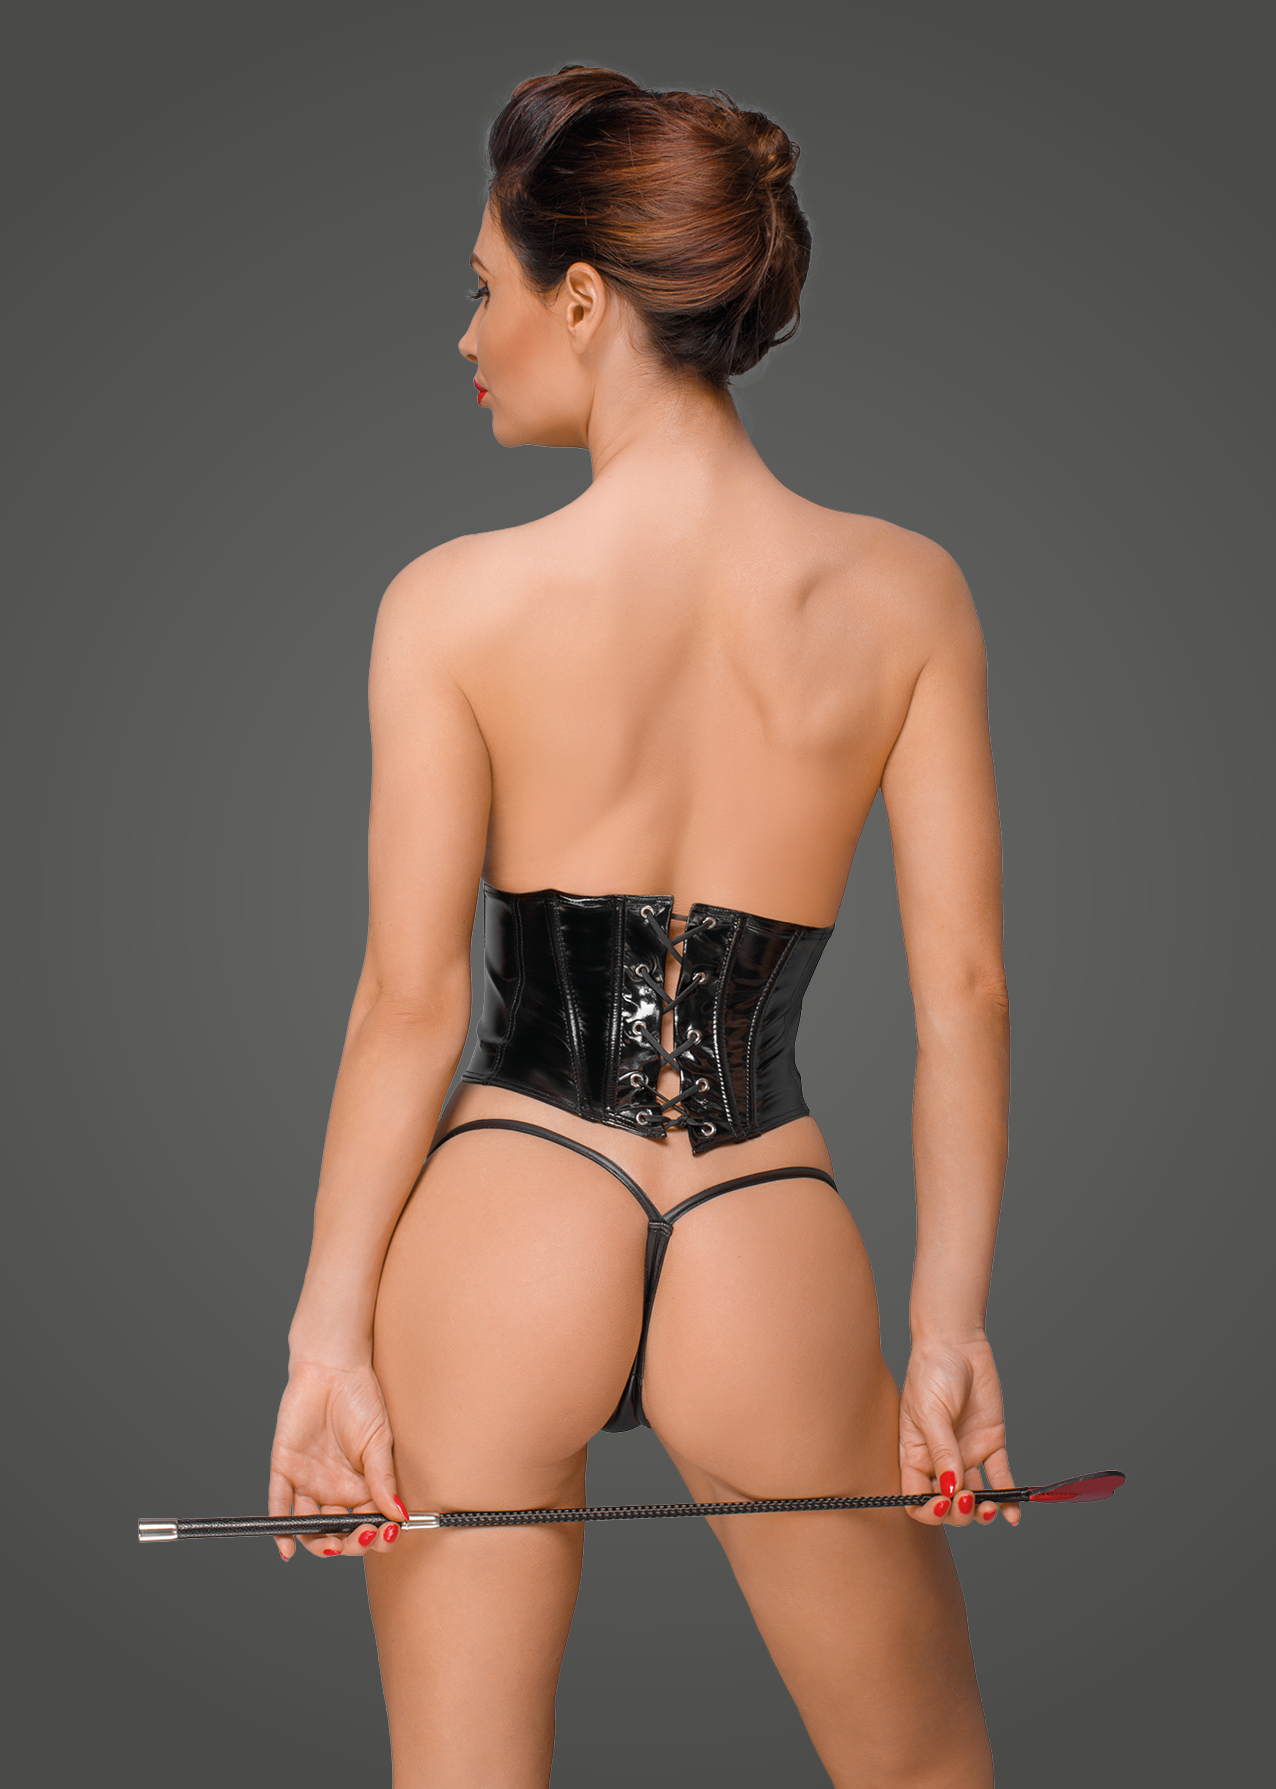 F193 PVC corset with adjustable lacing on the back